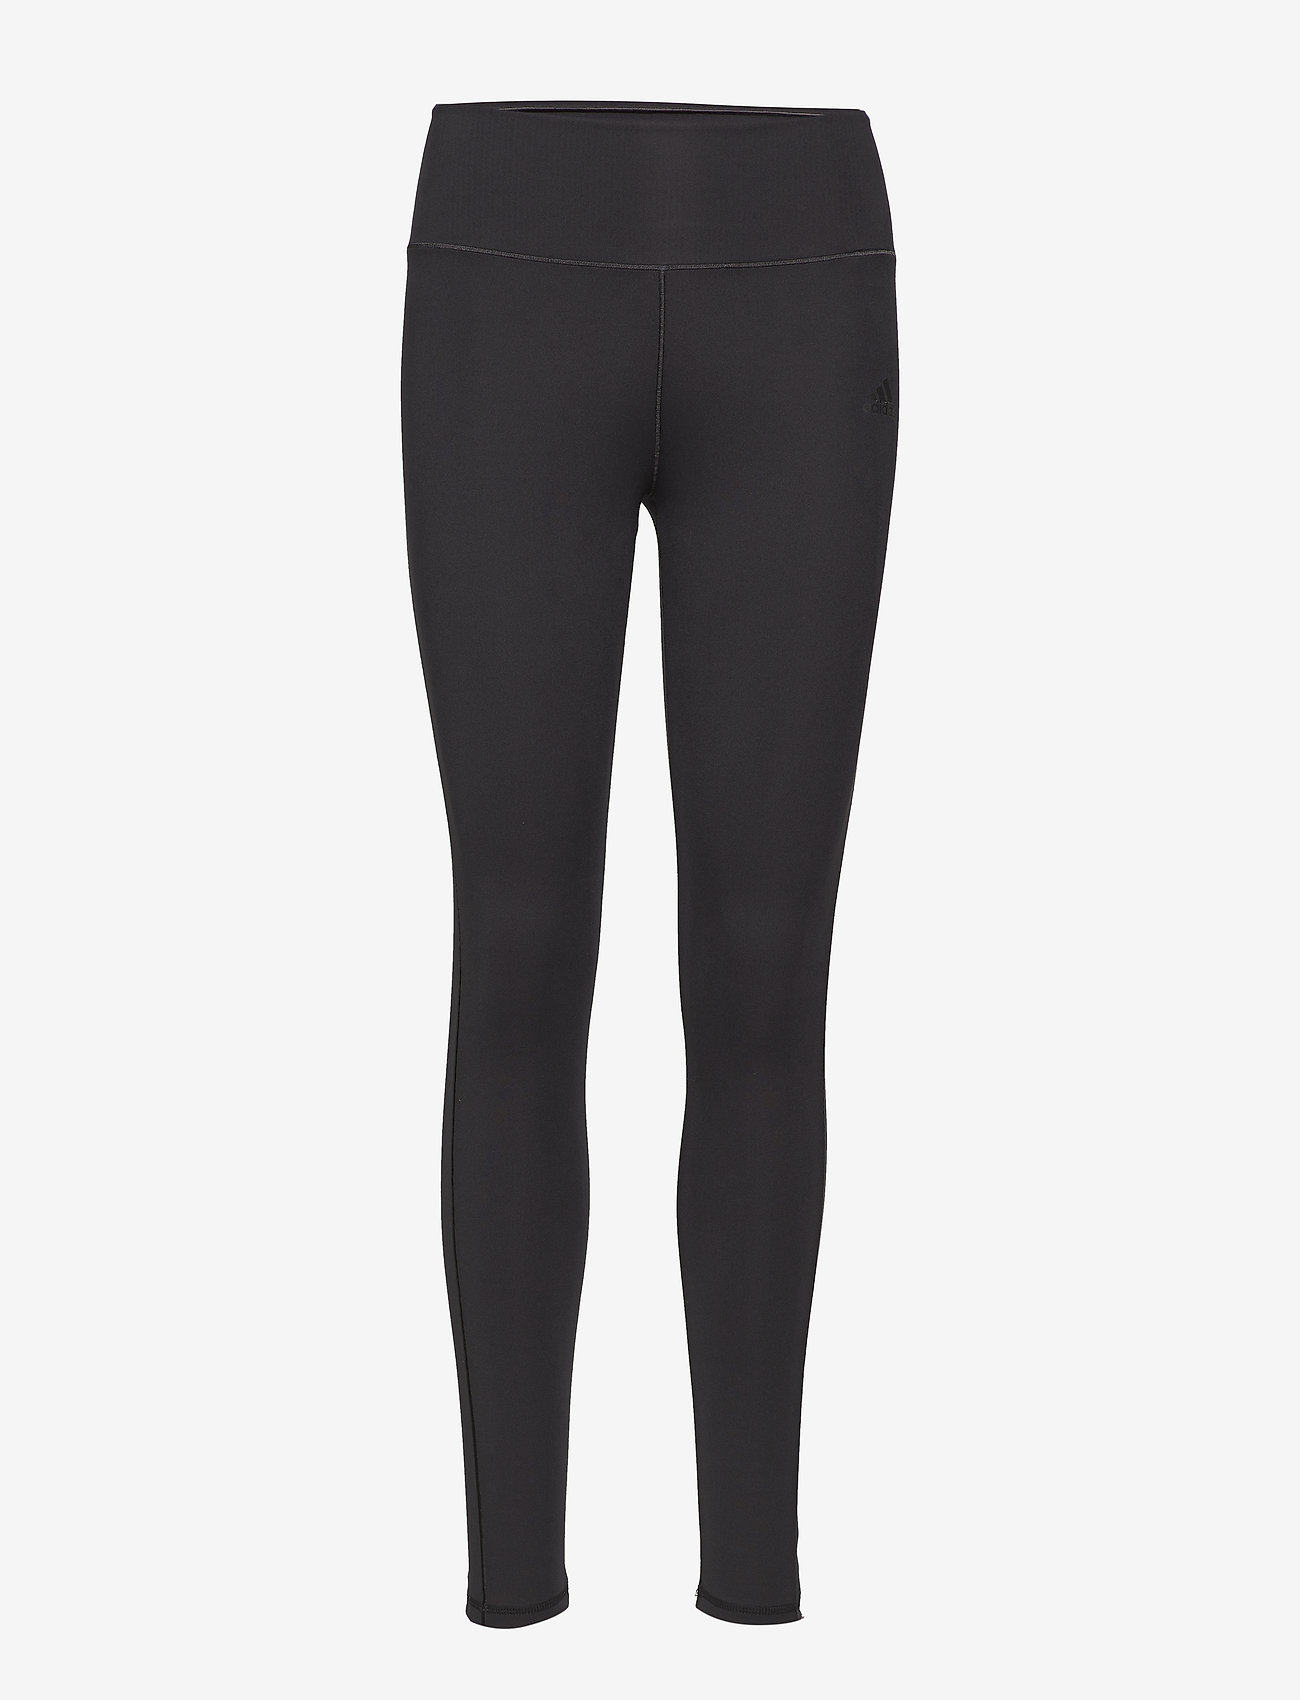 adidas Performance - ULTIMATE HIGH - running & training tights - black